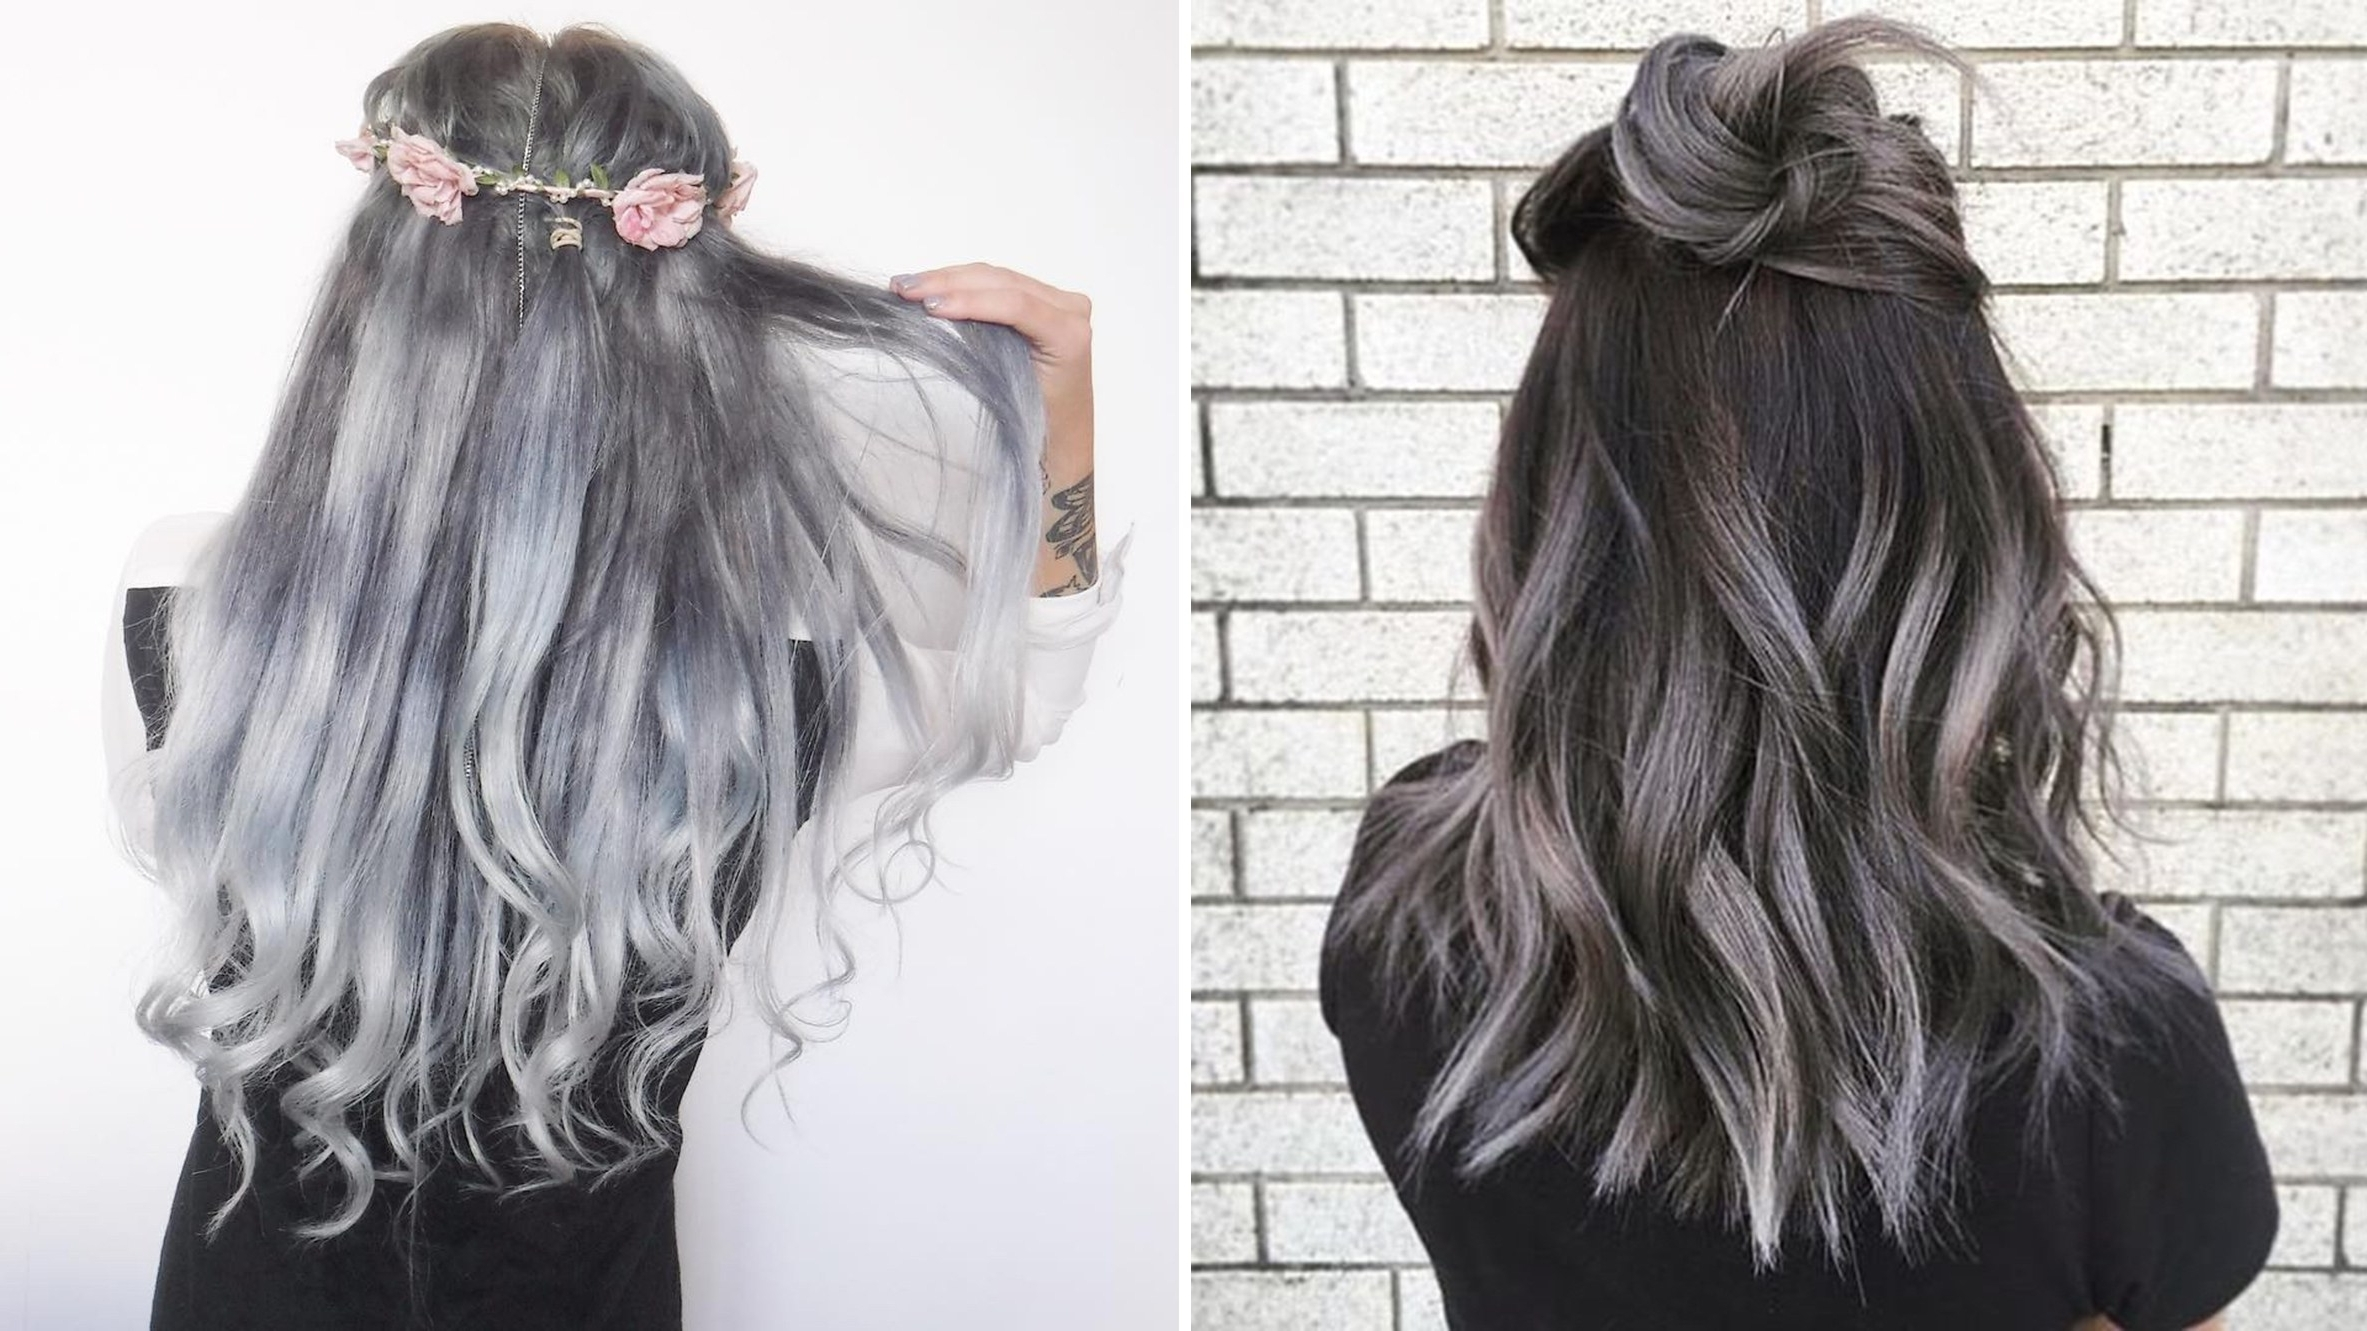 Fashionable Grayscale Ombre Blonde Hairstyles Within The Gray Hair Trend: 32 Instagram Worthy Gray Ombré Hairstyles (View 4 of 20)